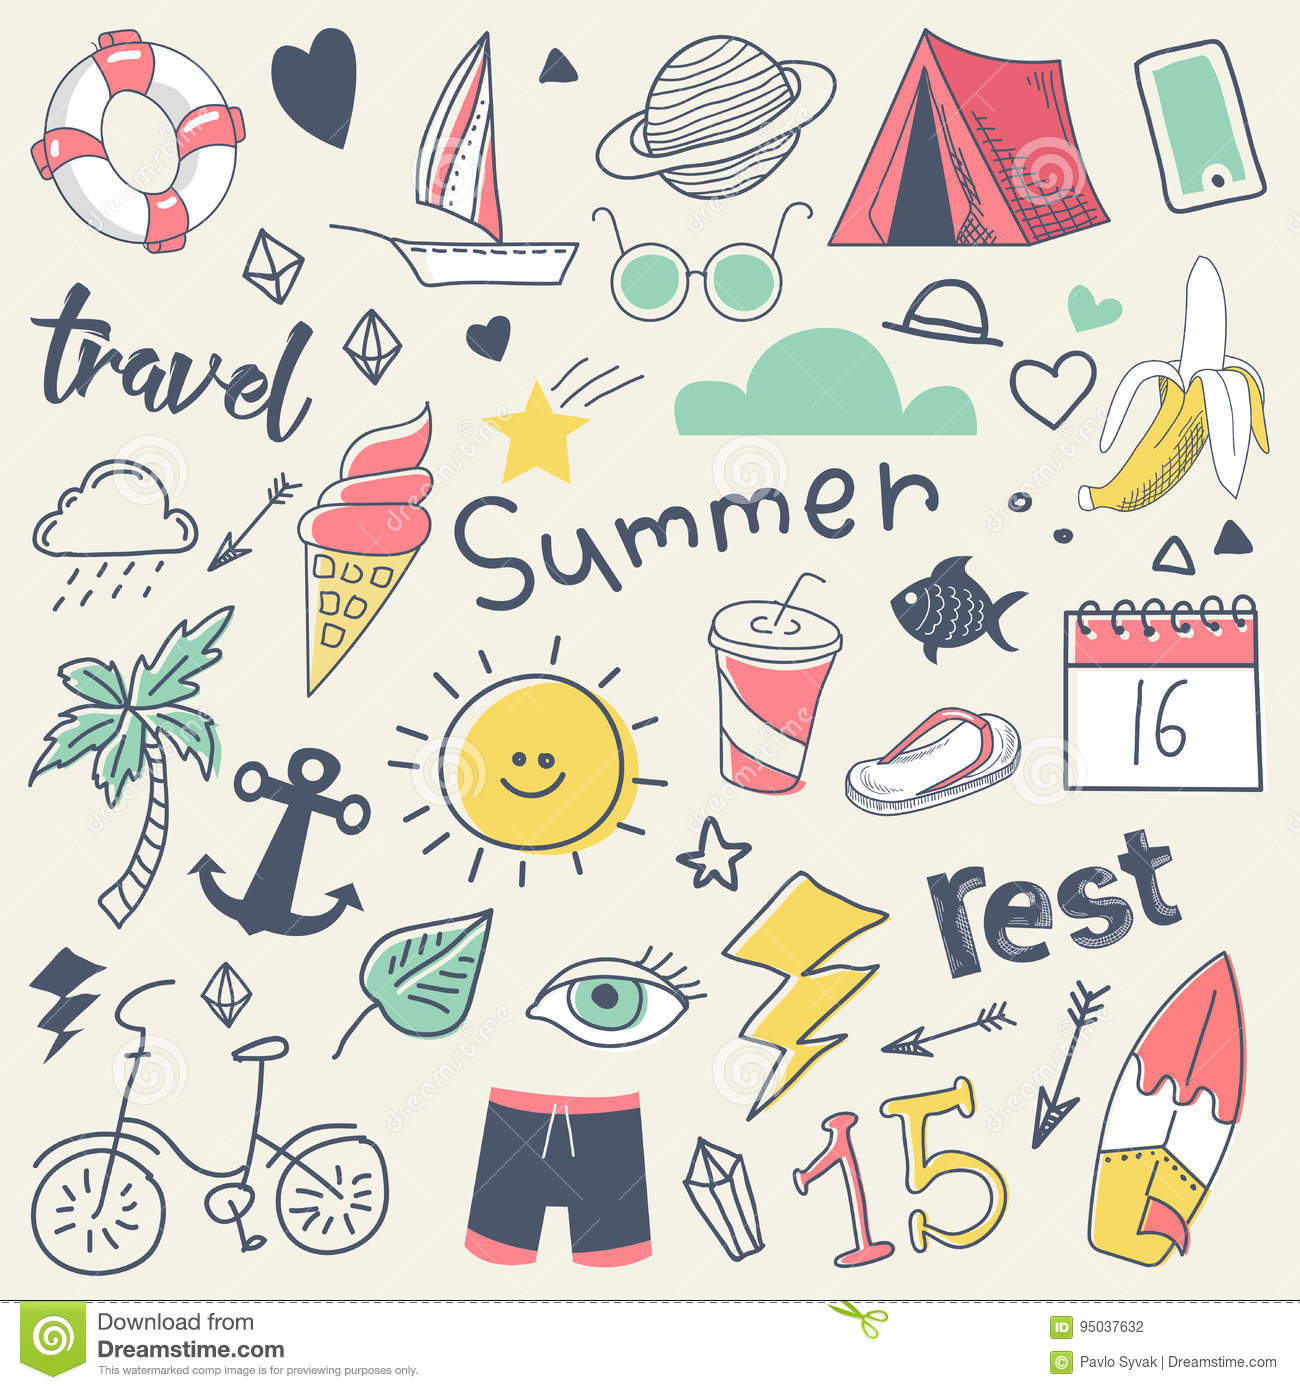 Summer Vacation Freehand Hand Drawn Doodle with Sun, Surf and Camp